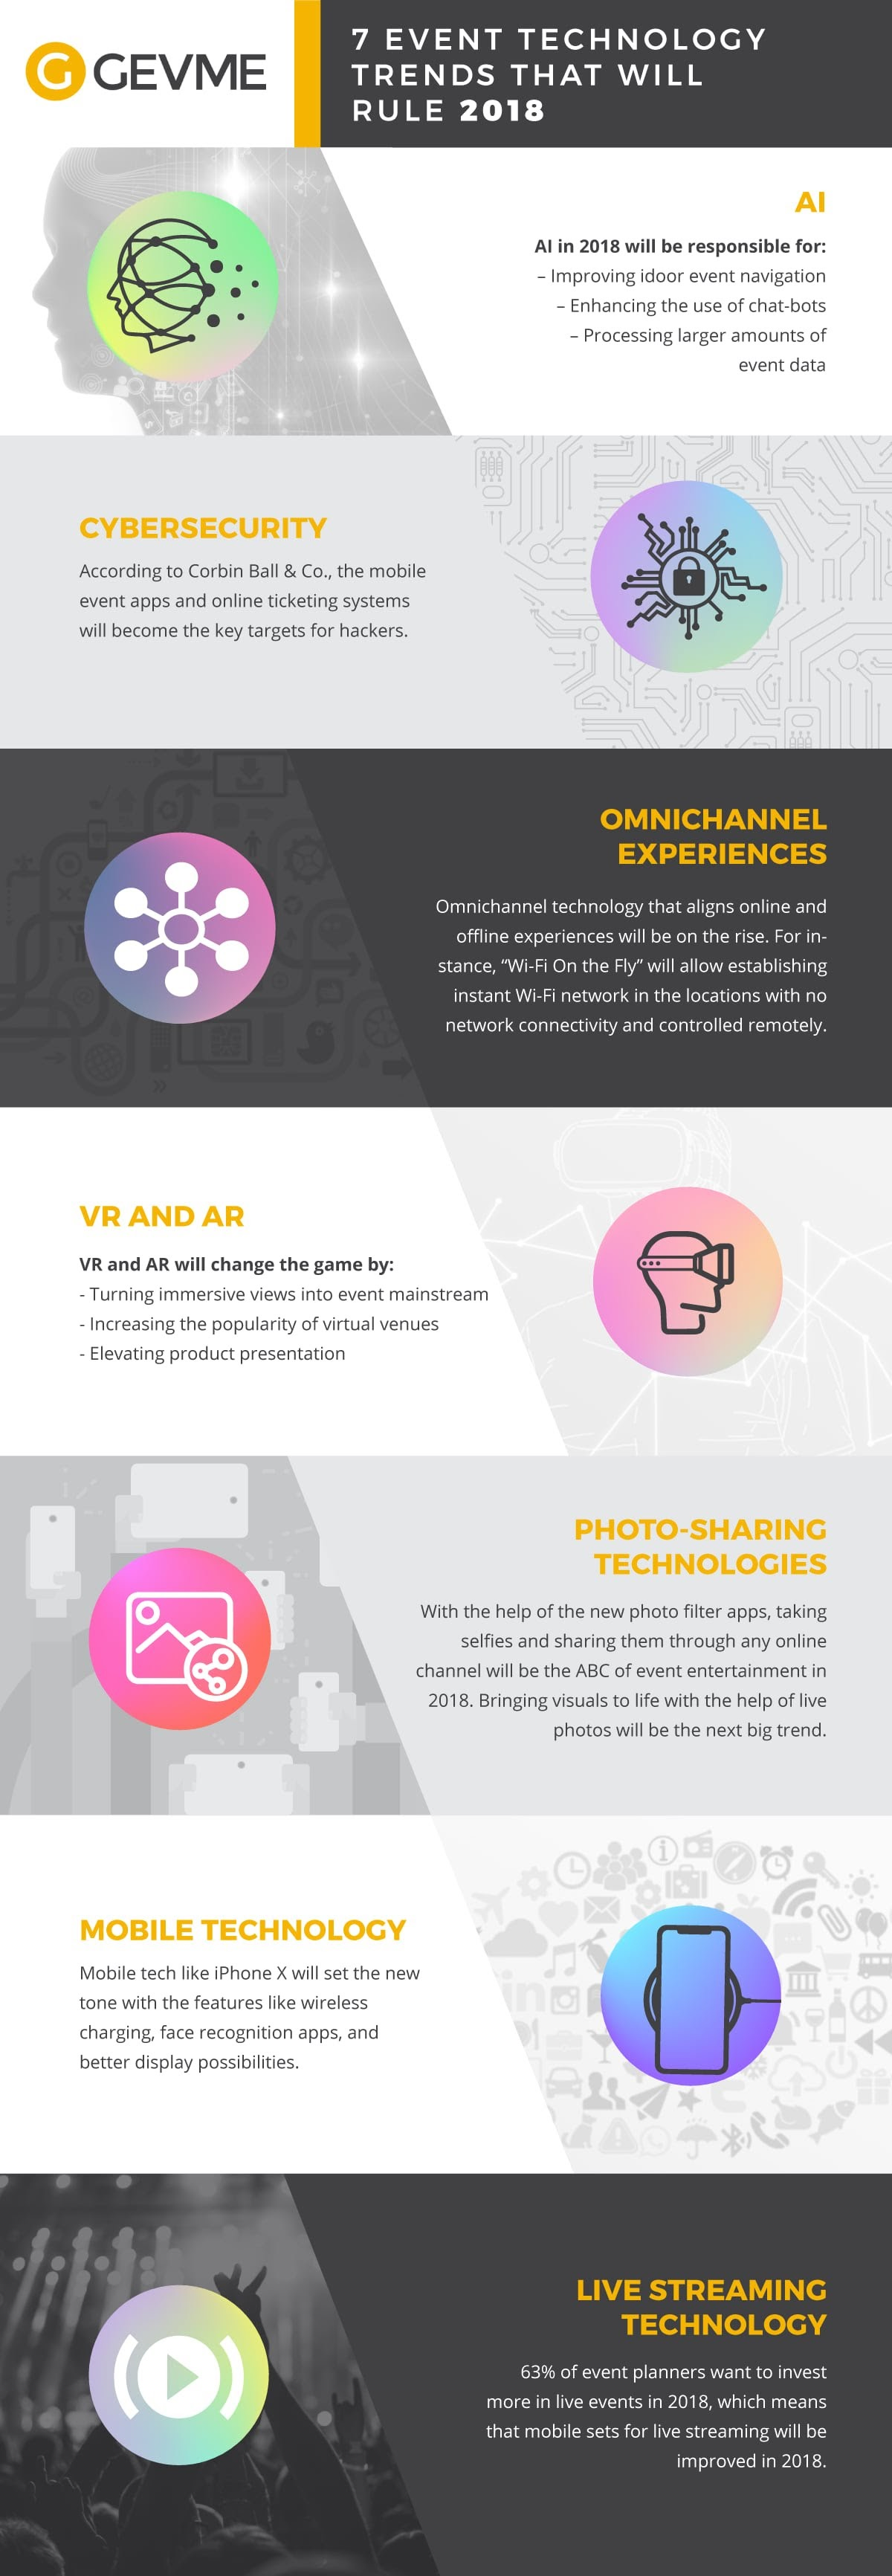 Event Technology Trends in 2018 - #Infographic